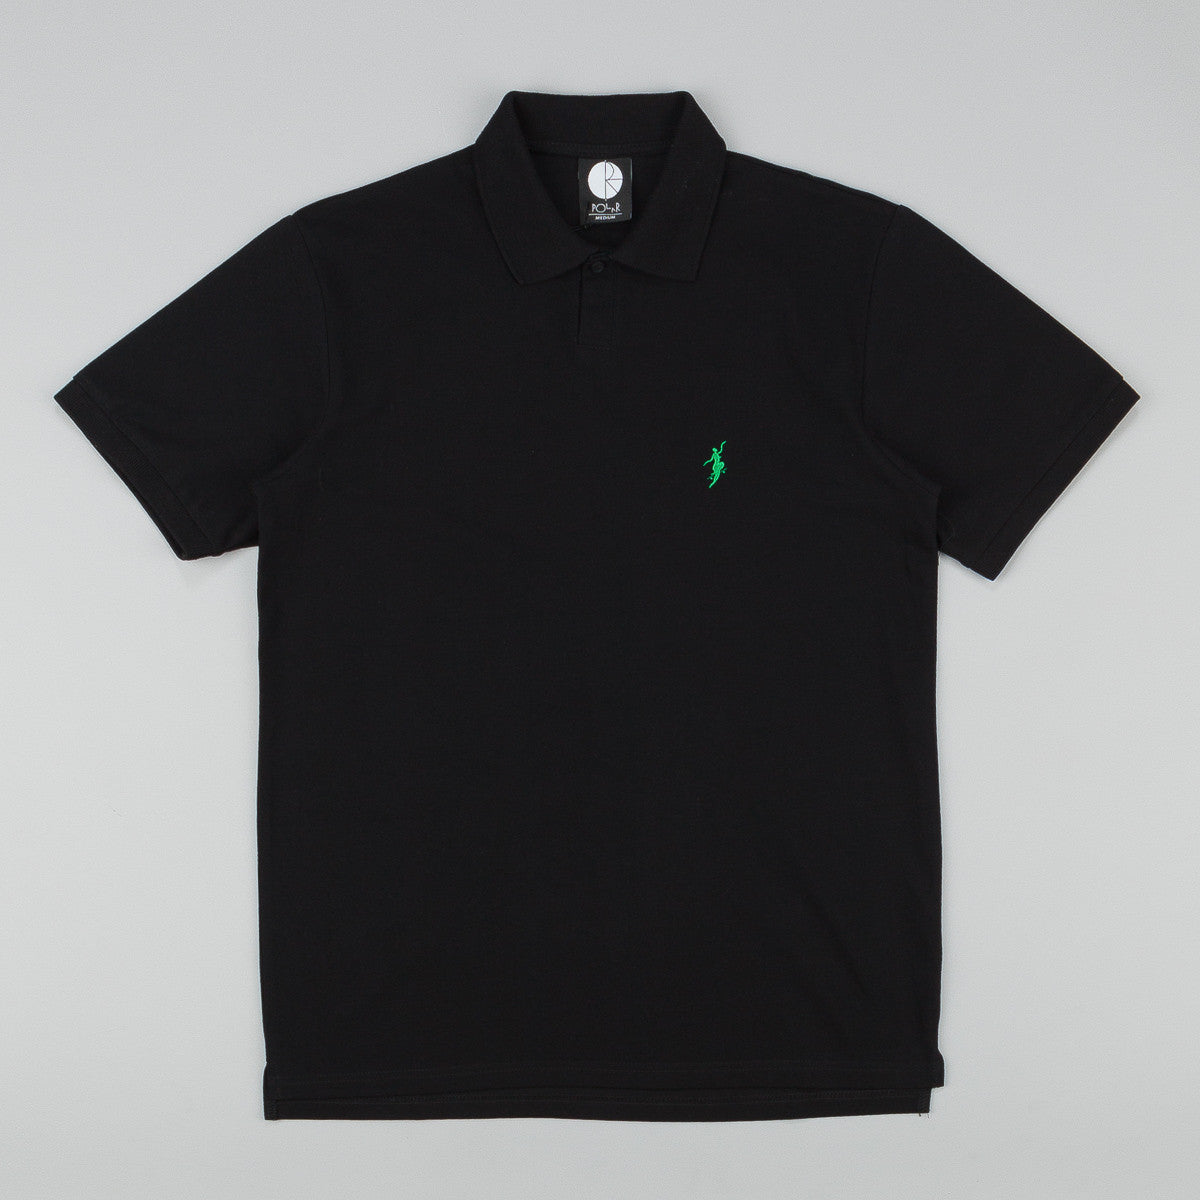 Polar No Comply Pike Polo Shirt - Black / Green